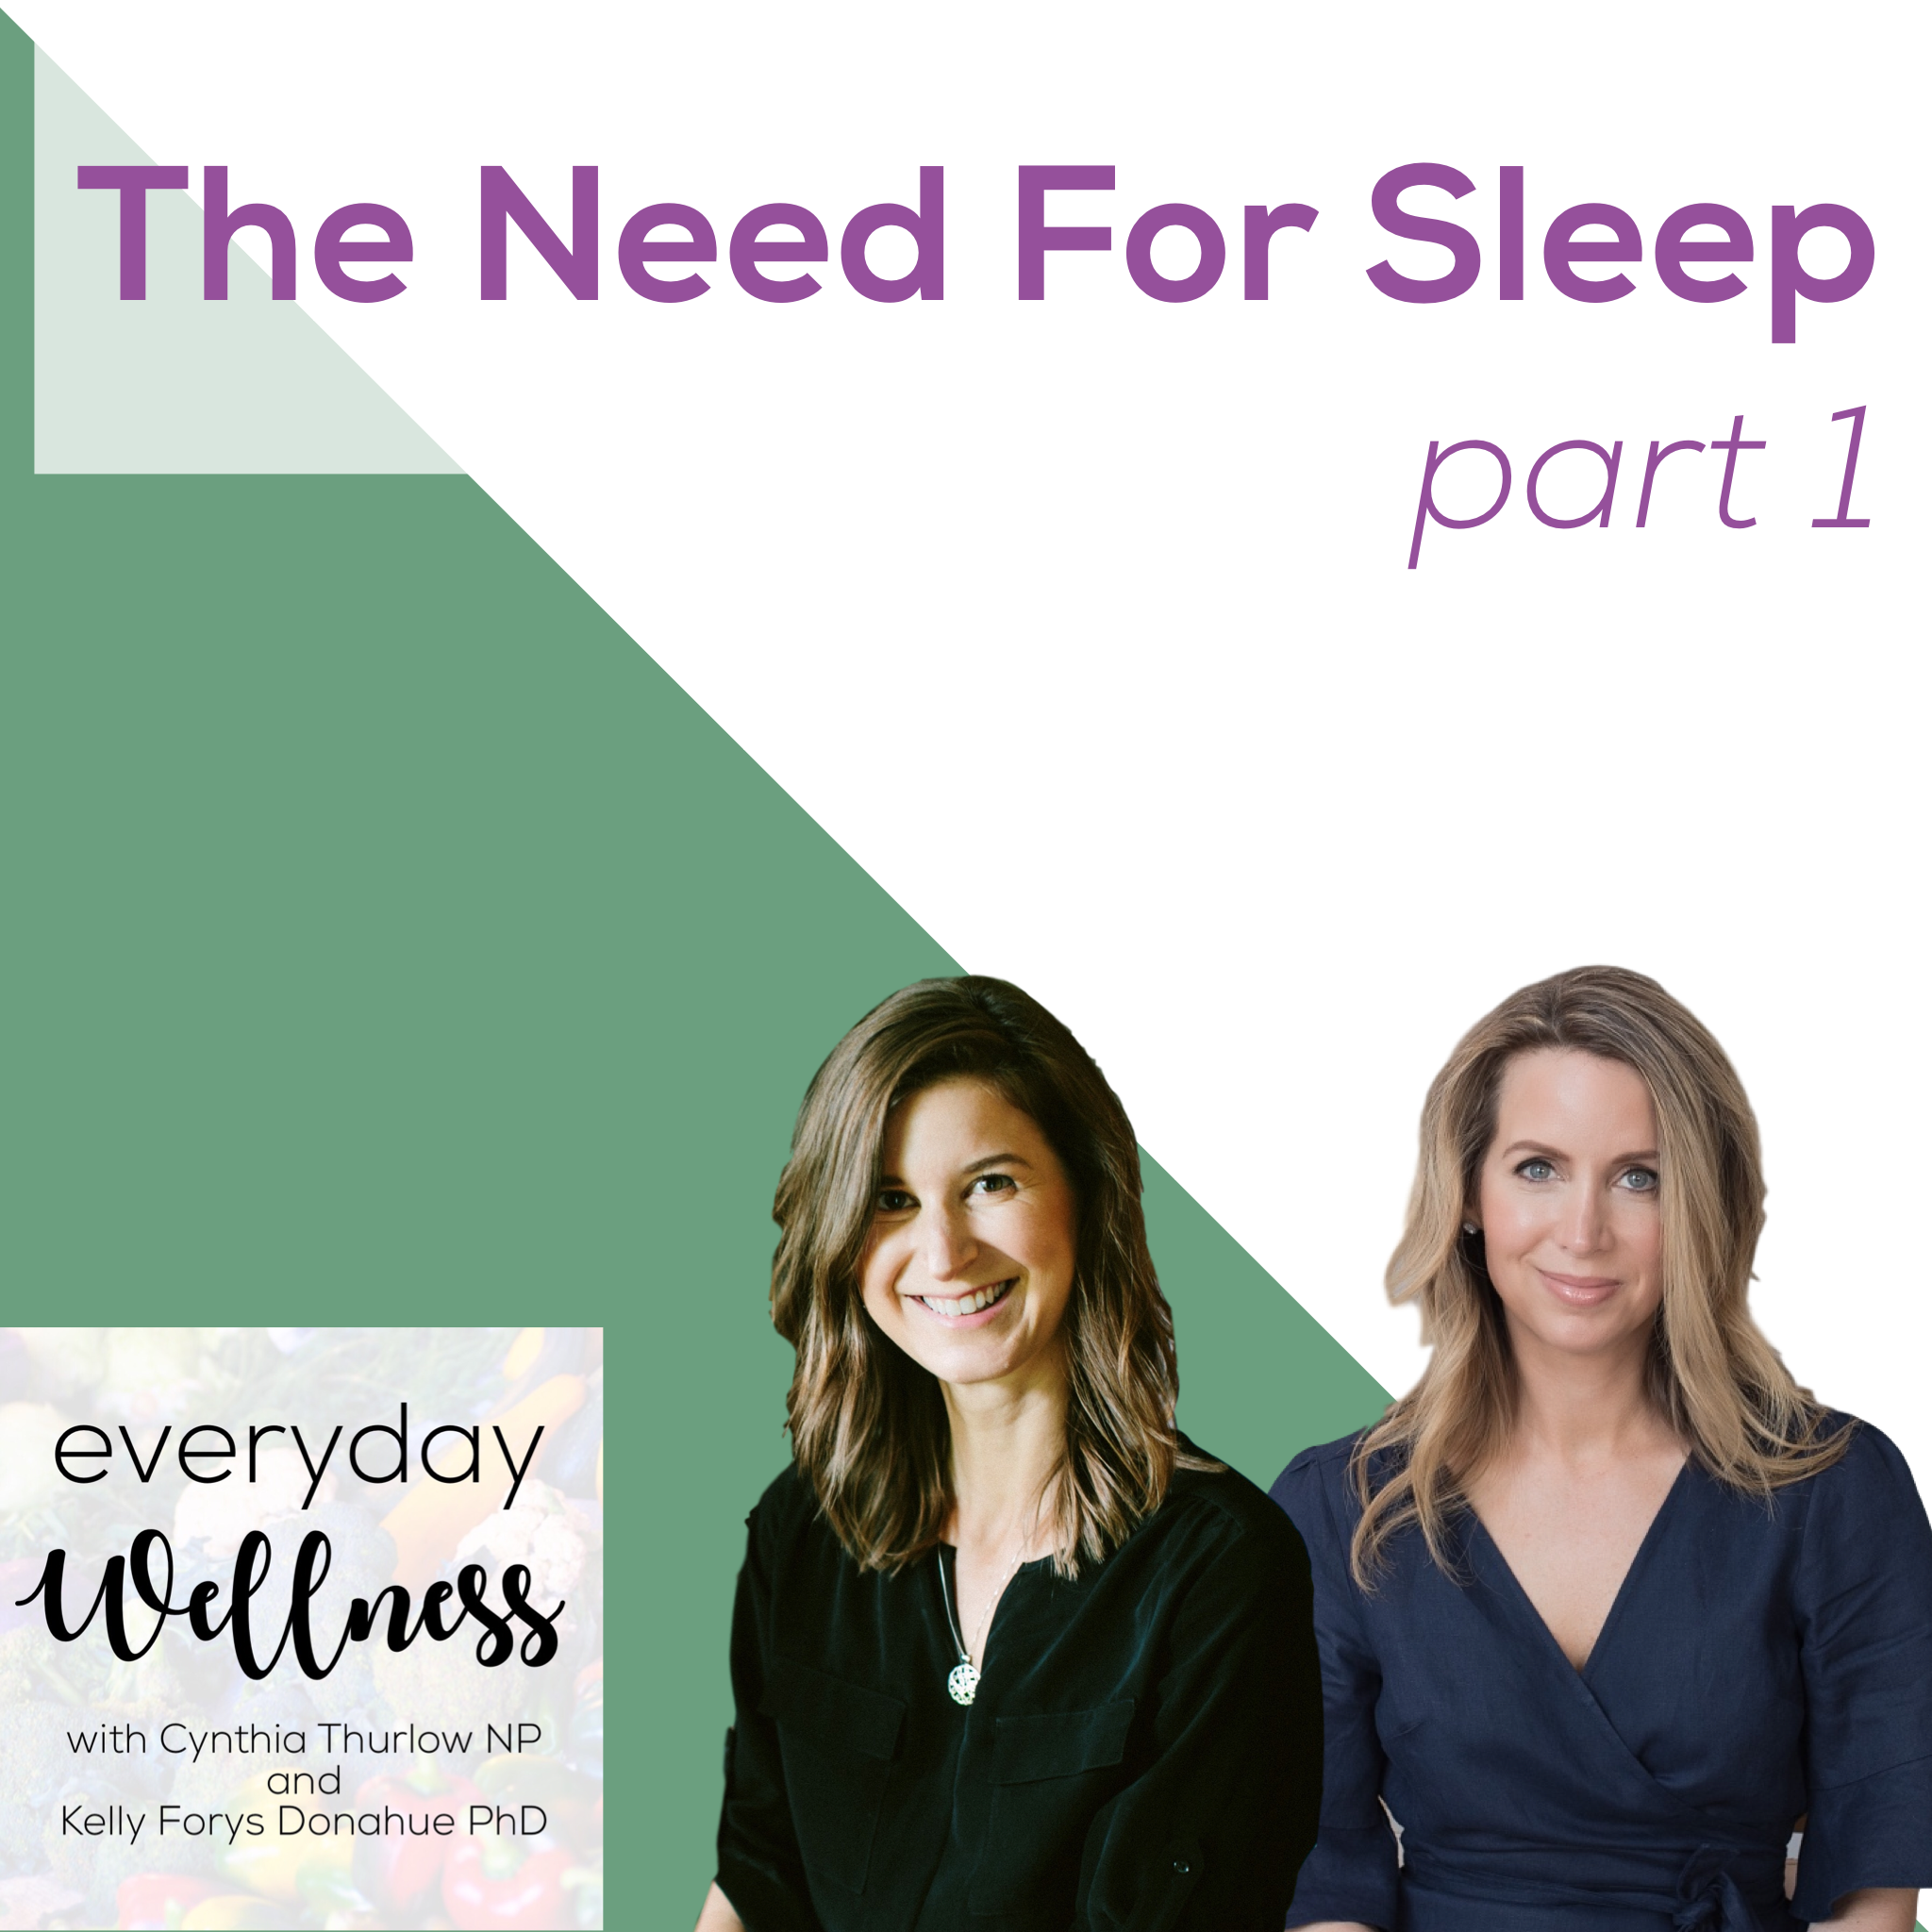 Episode 33: The Need for Sleep Part 2